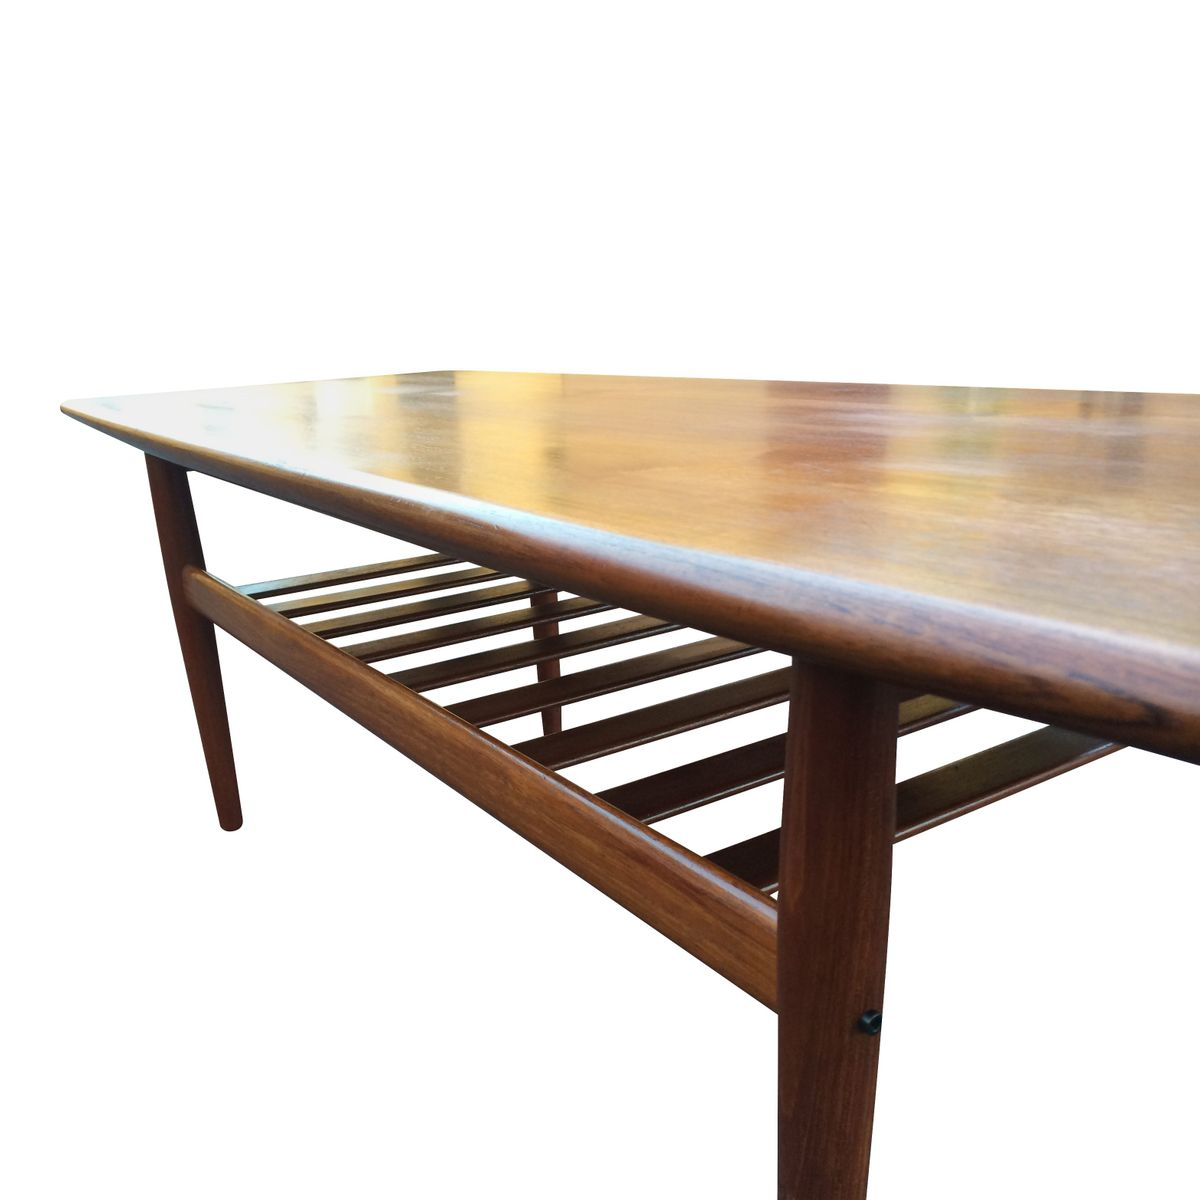 Teak Coffee Table By Grete Jalk For Glostrup M Belfabrik For Sale At Pamono